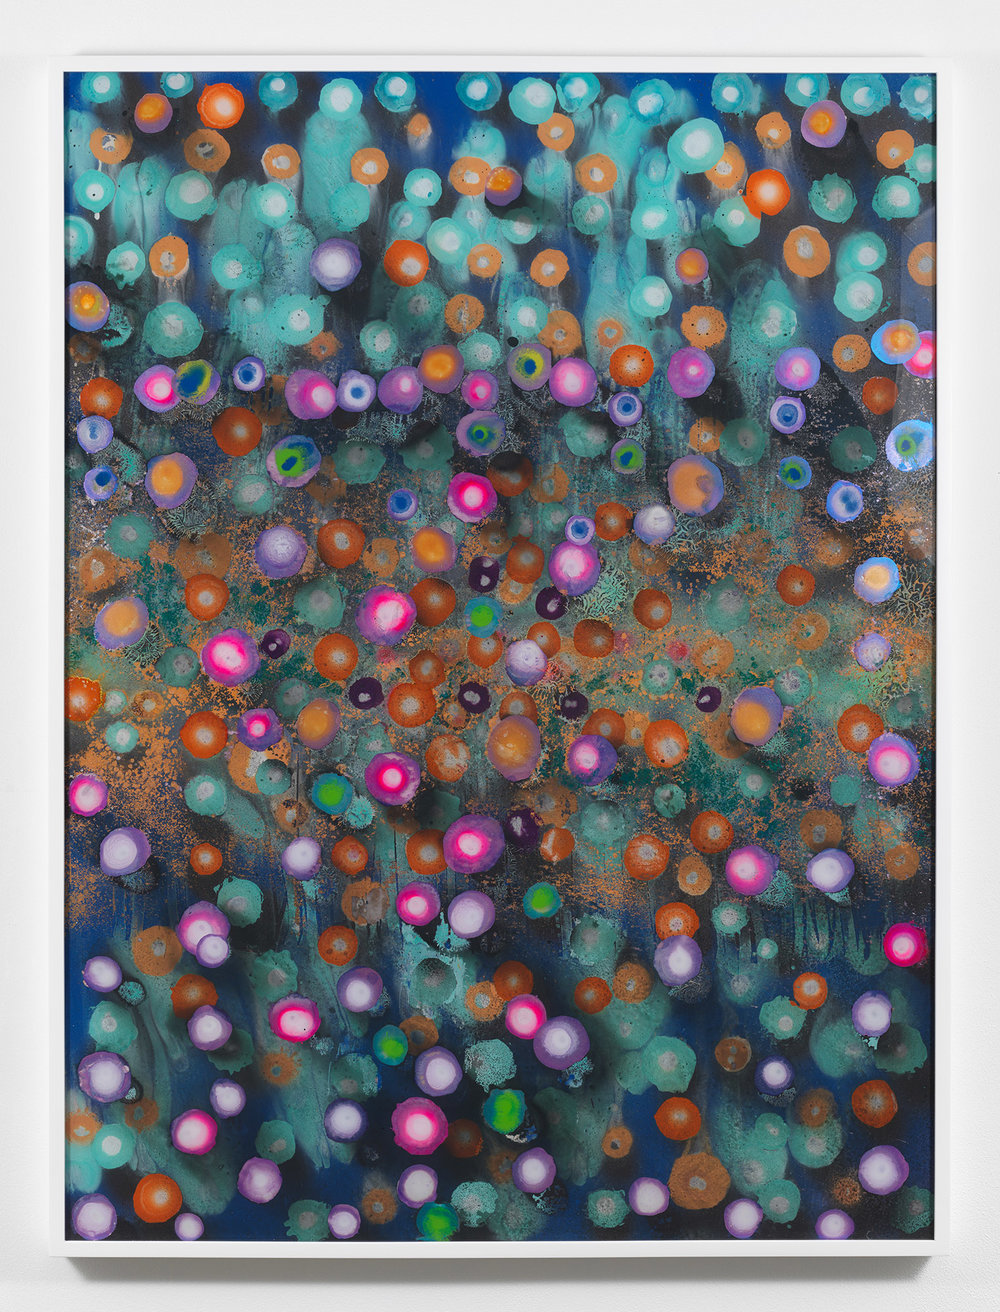 Giacinto Occhionero,   The Last Purple , 2017, Spray paint on plexiglass, 40 x 30 inches (101.6 x 76.2 cm)